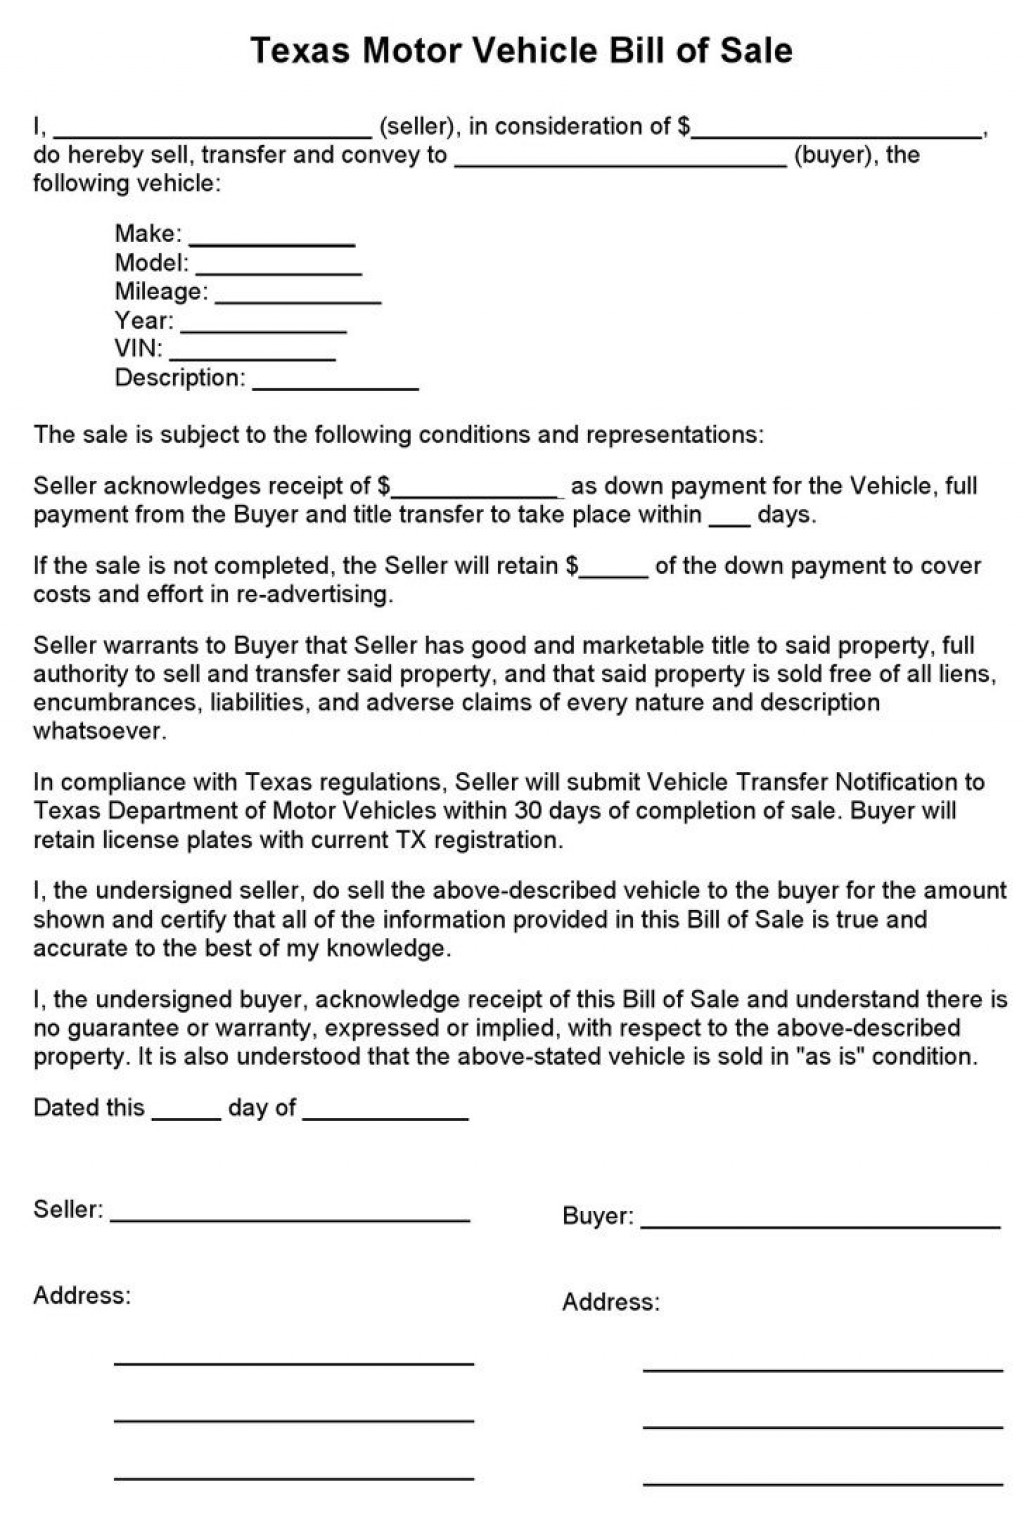 001 Fearsome Bill Of Sale Texa Template Highest Clarity  Motor Vehicle Form Free PrintableLarge